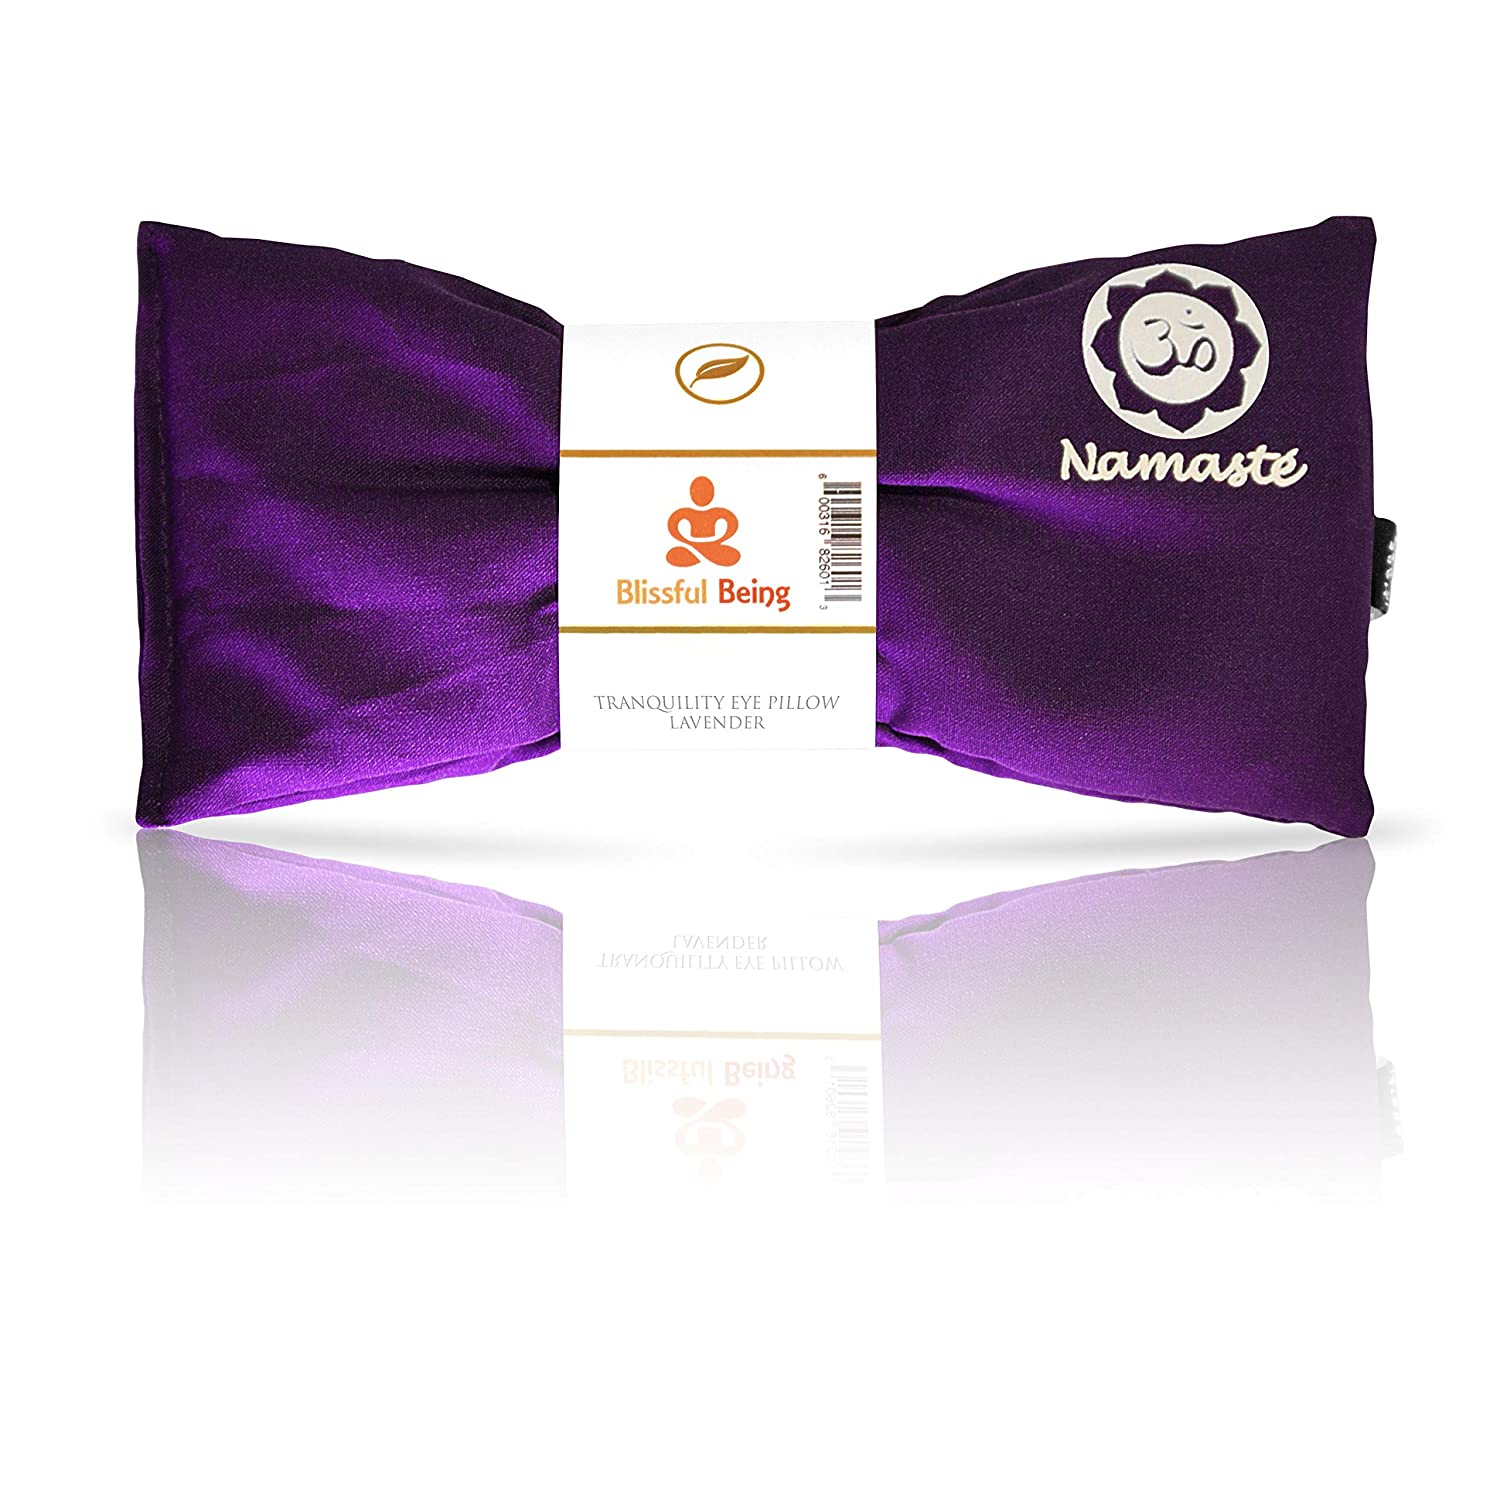 Blissful Being Namaste Yoga Eye Pillow with Lavender - Lavender Eye Pillow perfect for Savasana, Meditation, Relaxation, and Yoga - Soft, Organic Cotton (Purple)